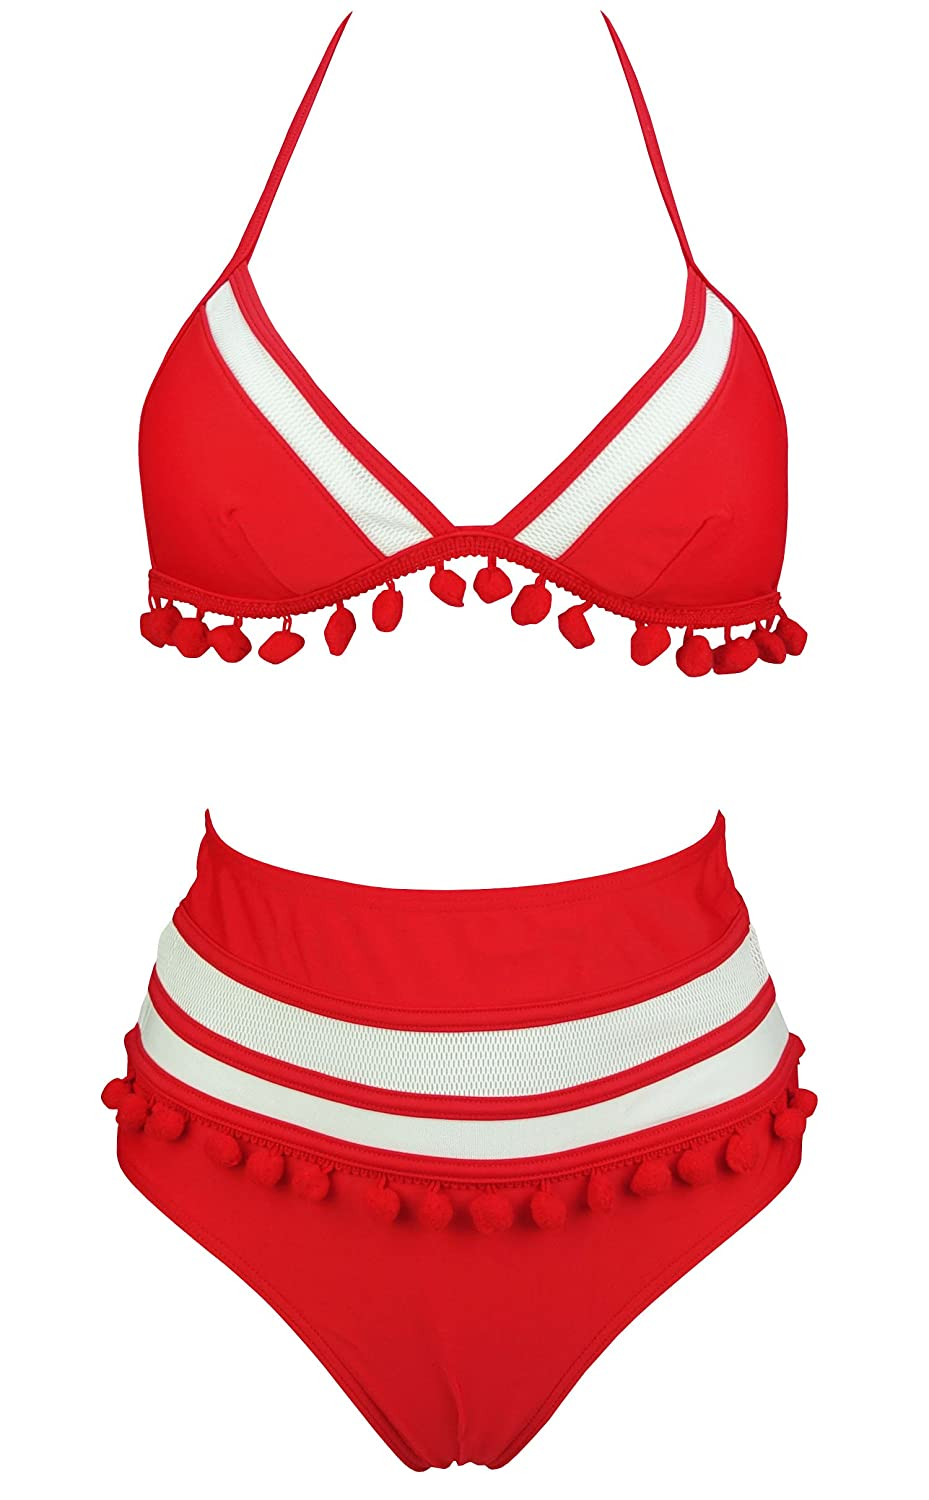 ef2c4186f3851 Fast Ship(FBA):Fulfilled by Amazon with two-day Shipping(Ship from USA)  Hand wash cold, line dry;Polyester Spandex Elastane Mesh Blend Swimsuit  Fabric